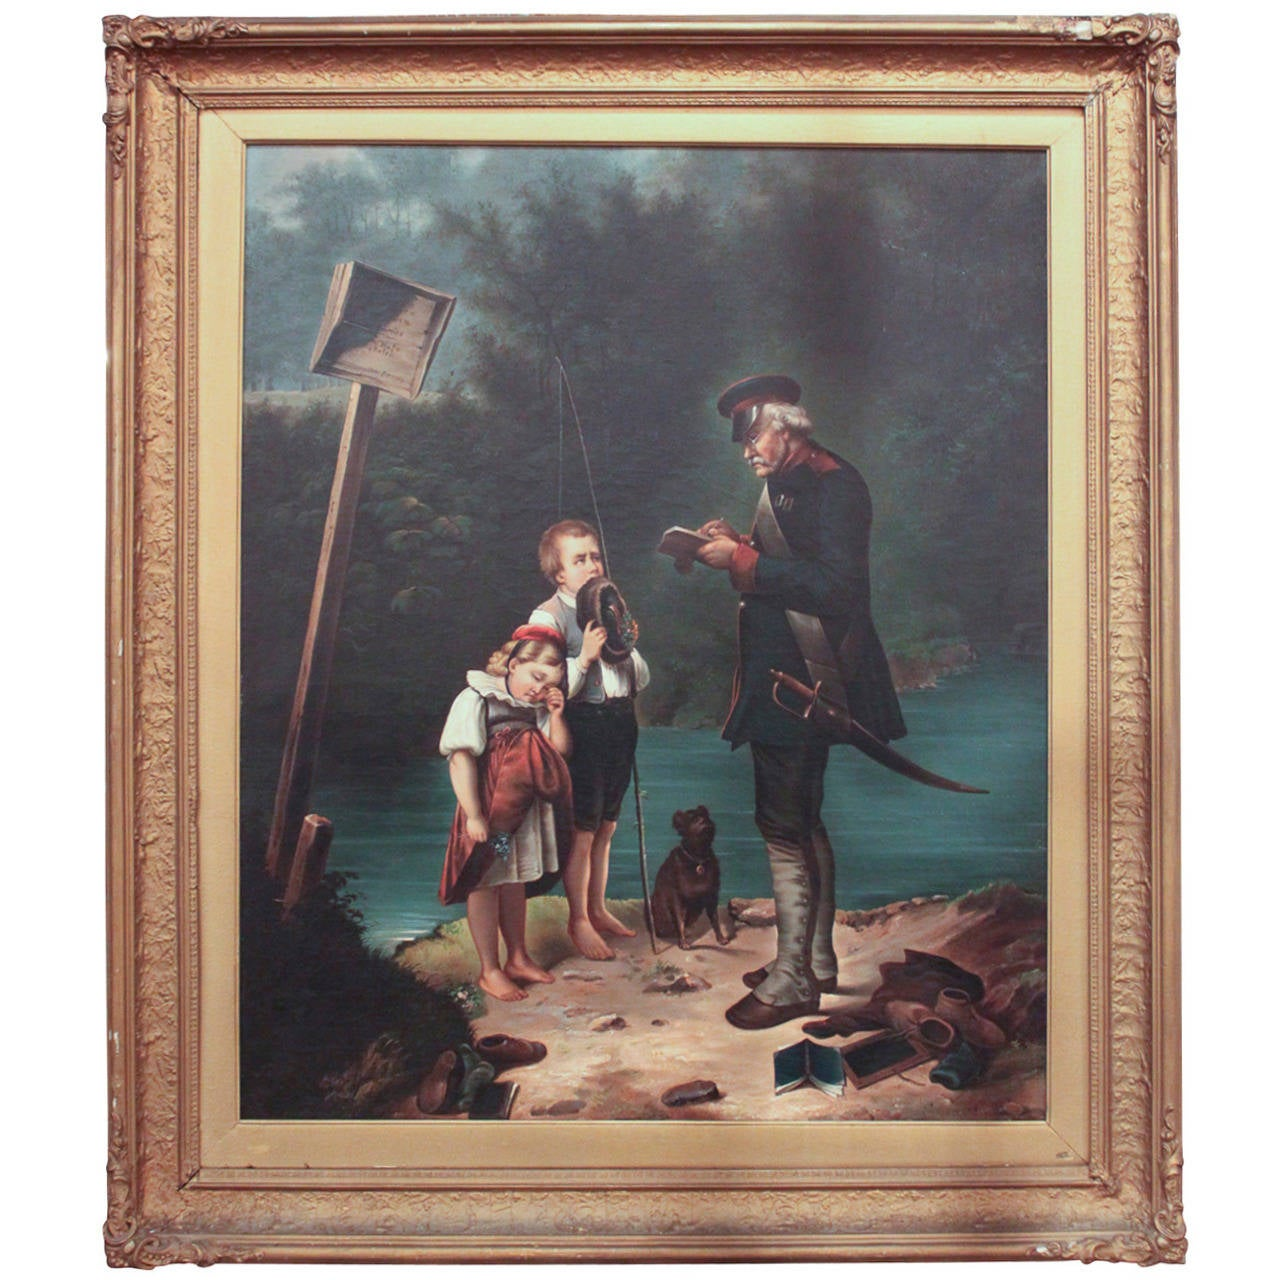 19th C German Oil On Canvas At 1stdibs